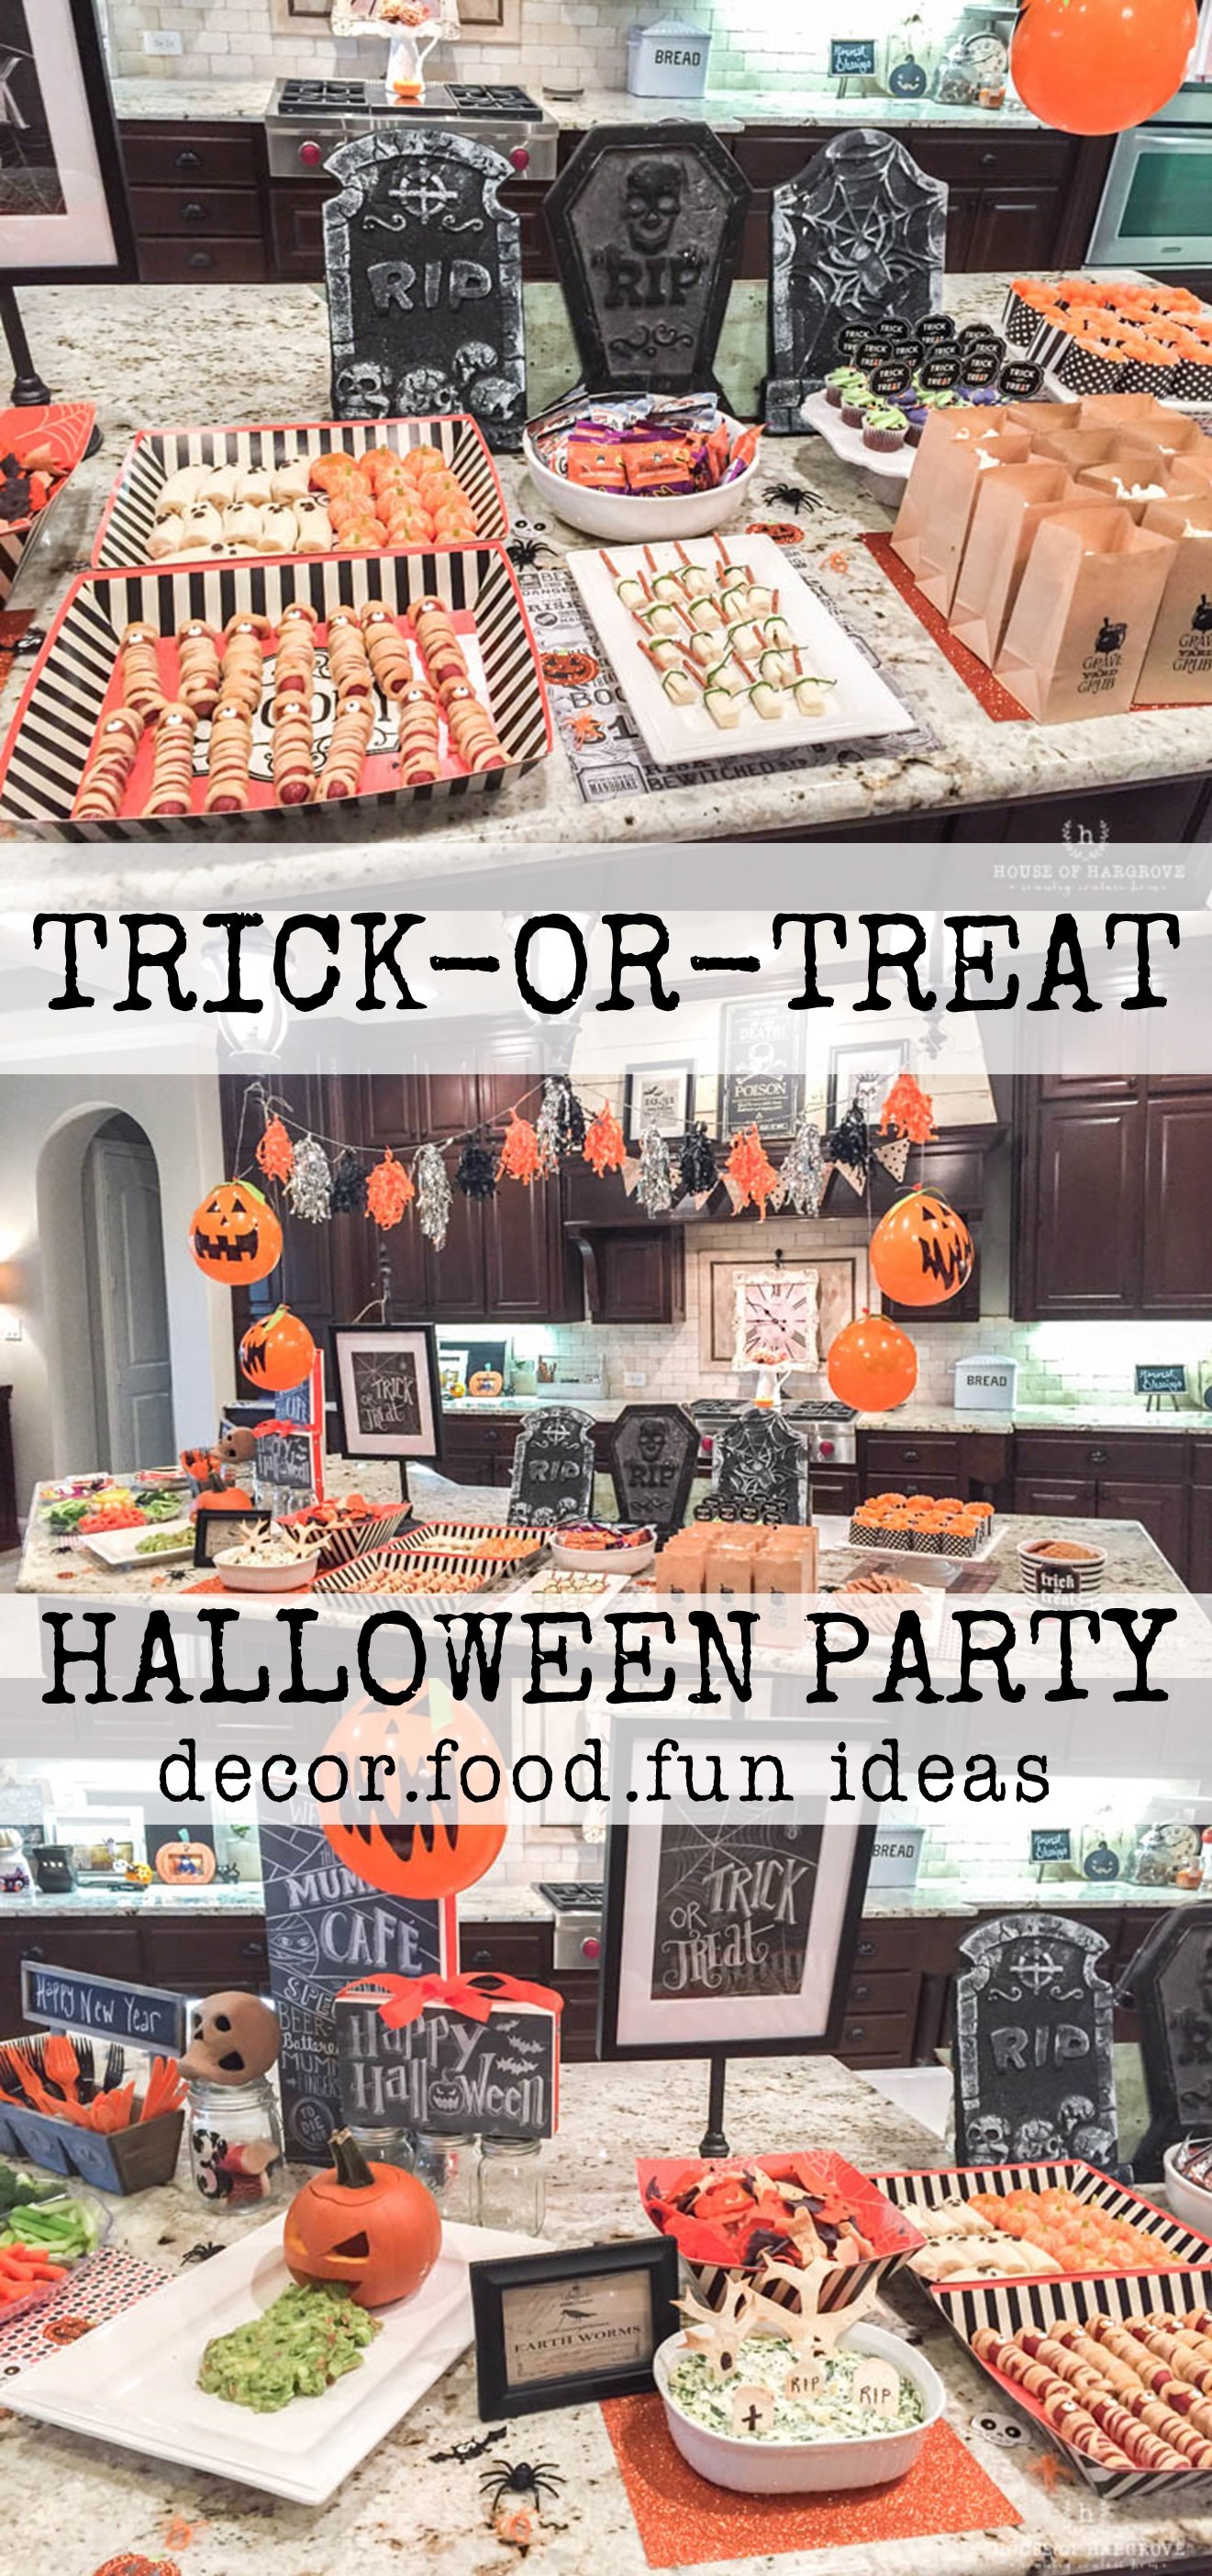 trick-or-treat-halloween-party-20